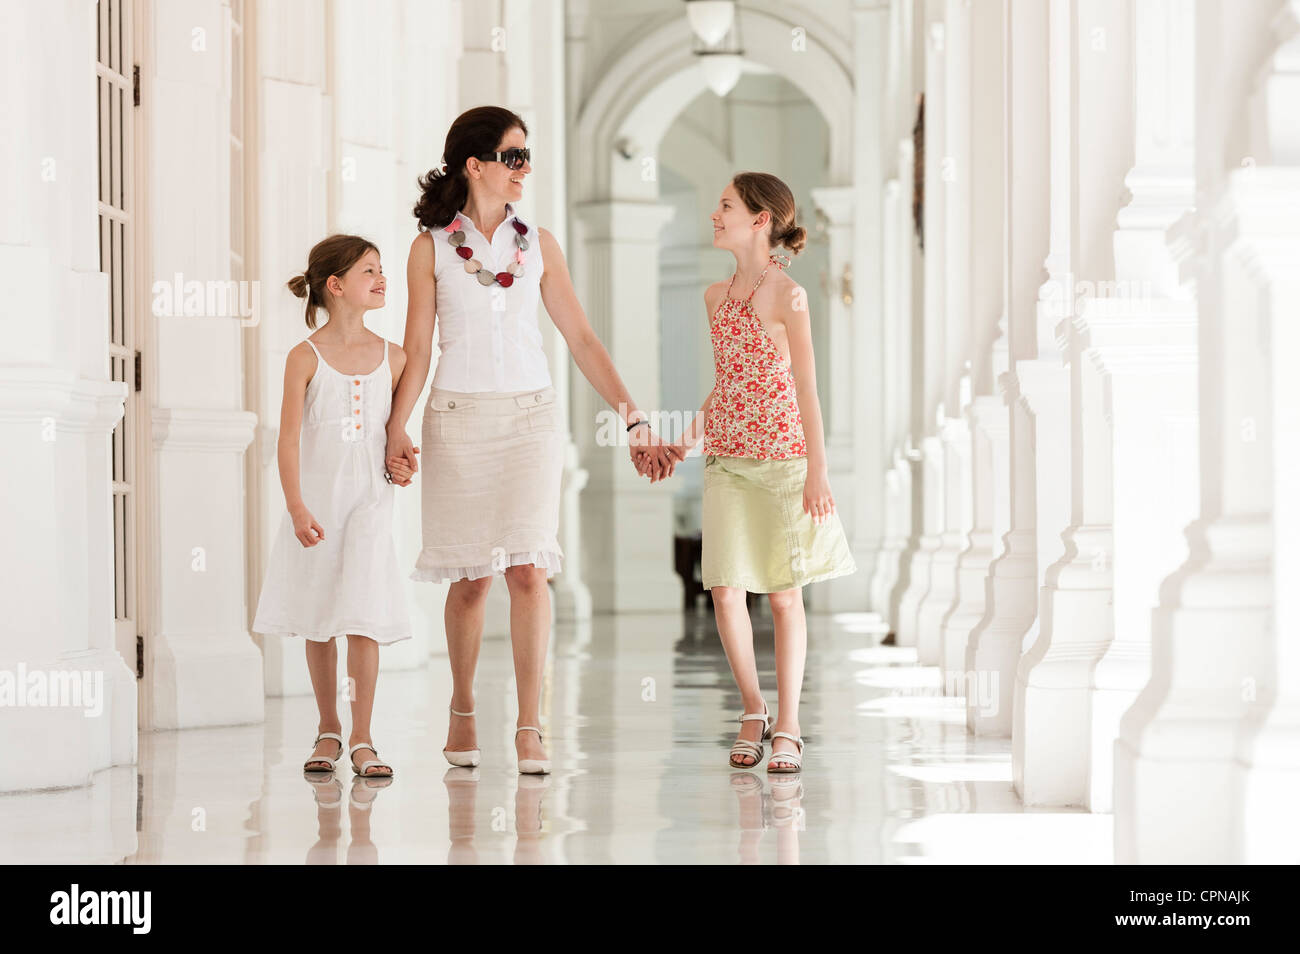 Mother and daughter walking side by side holding hands - Stock Image